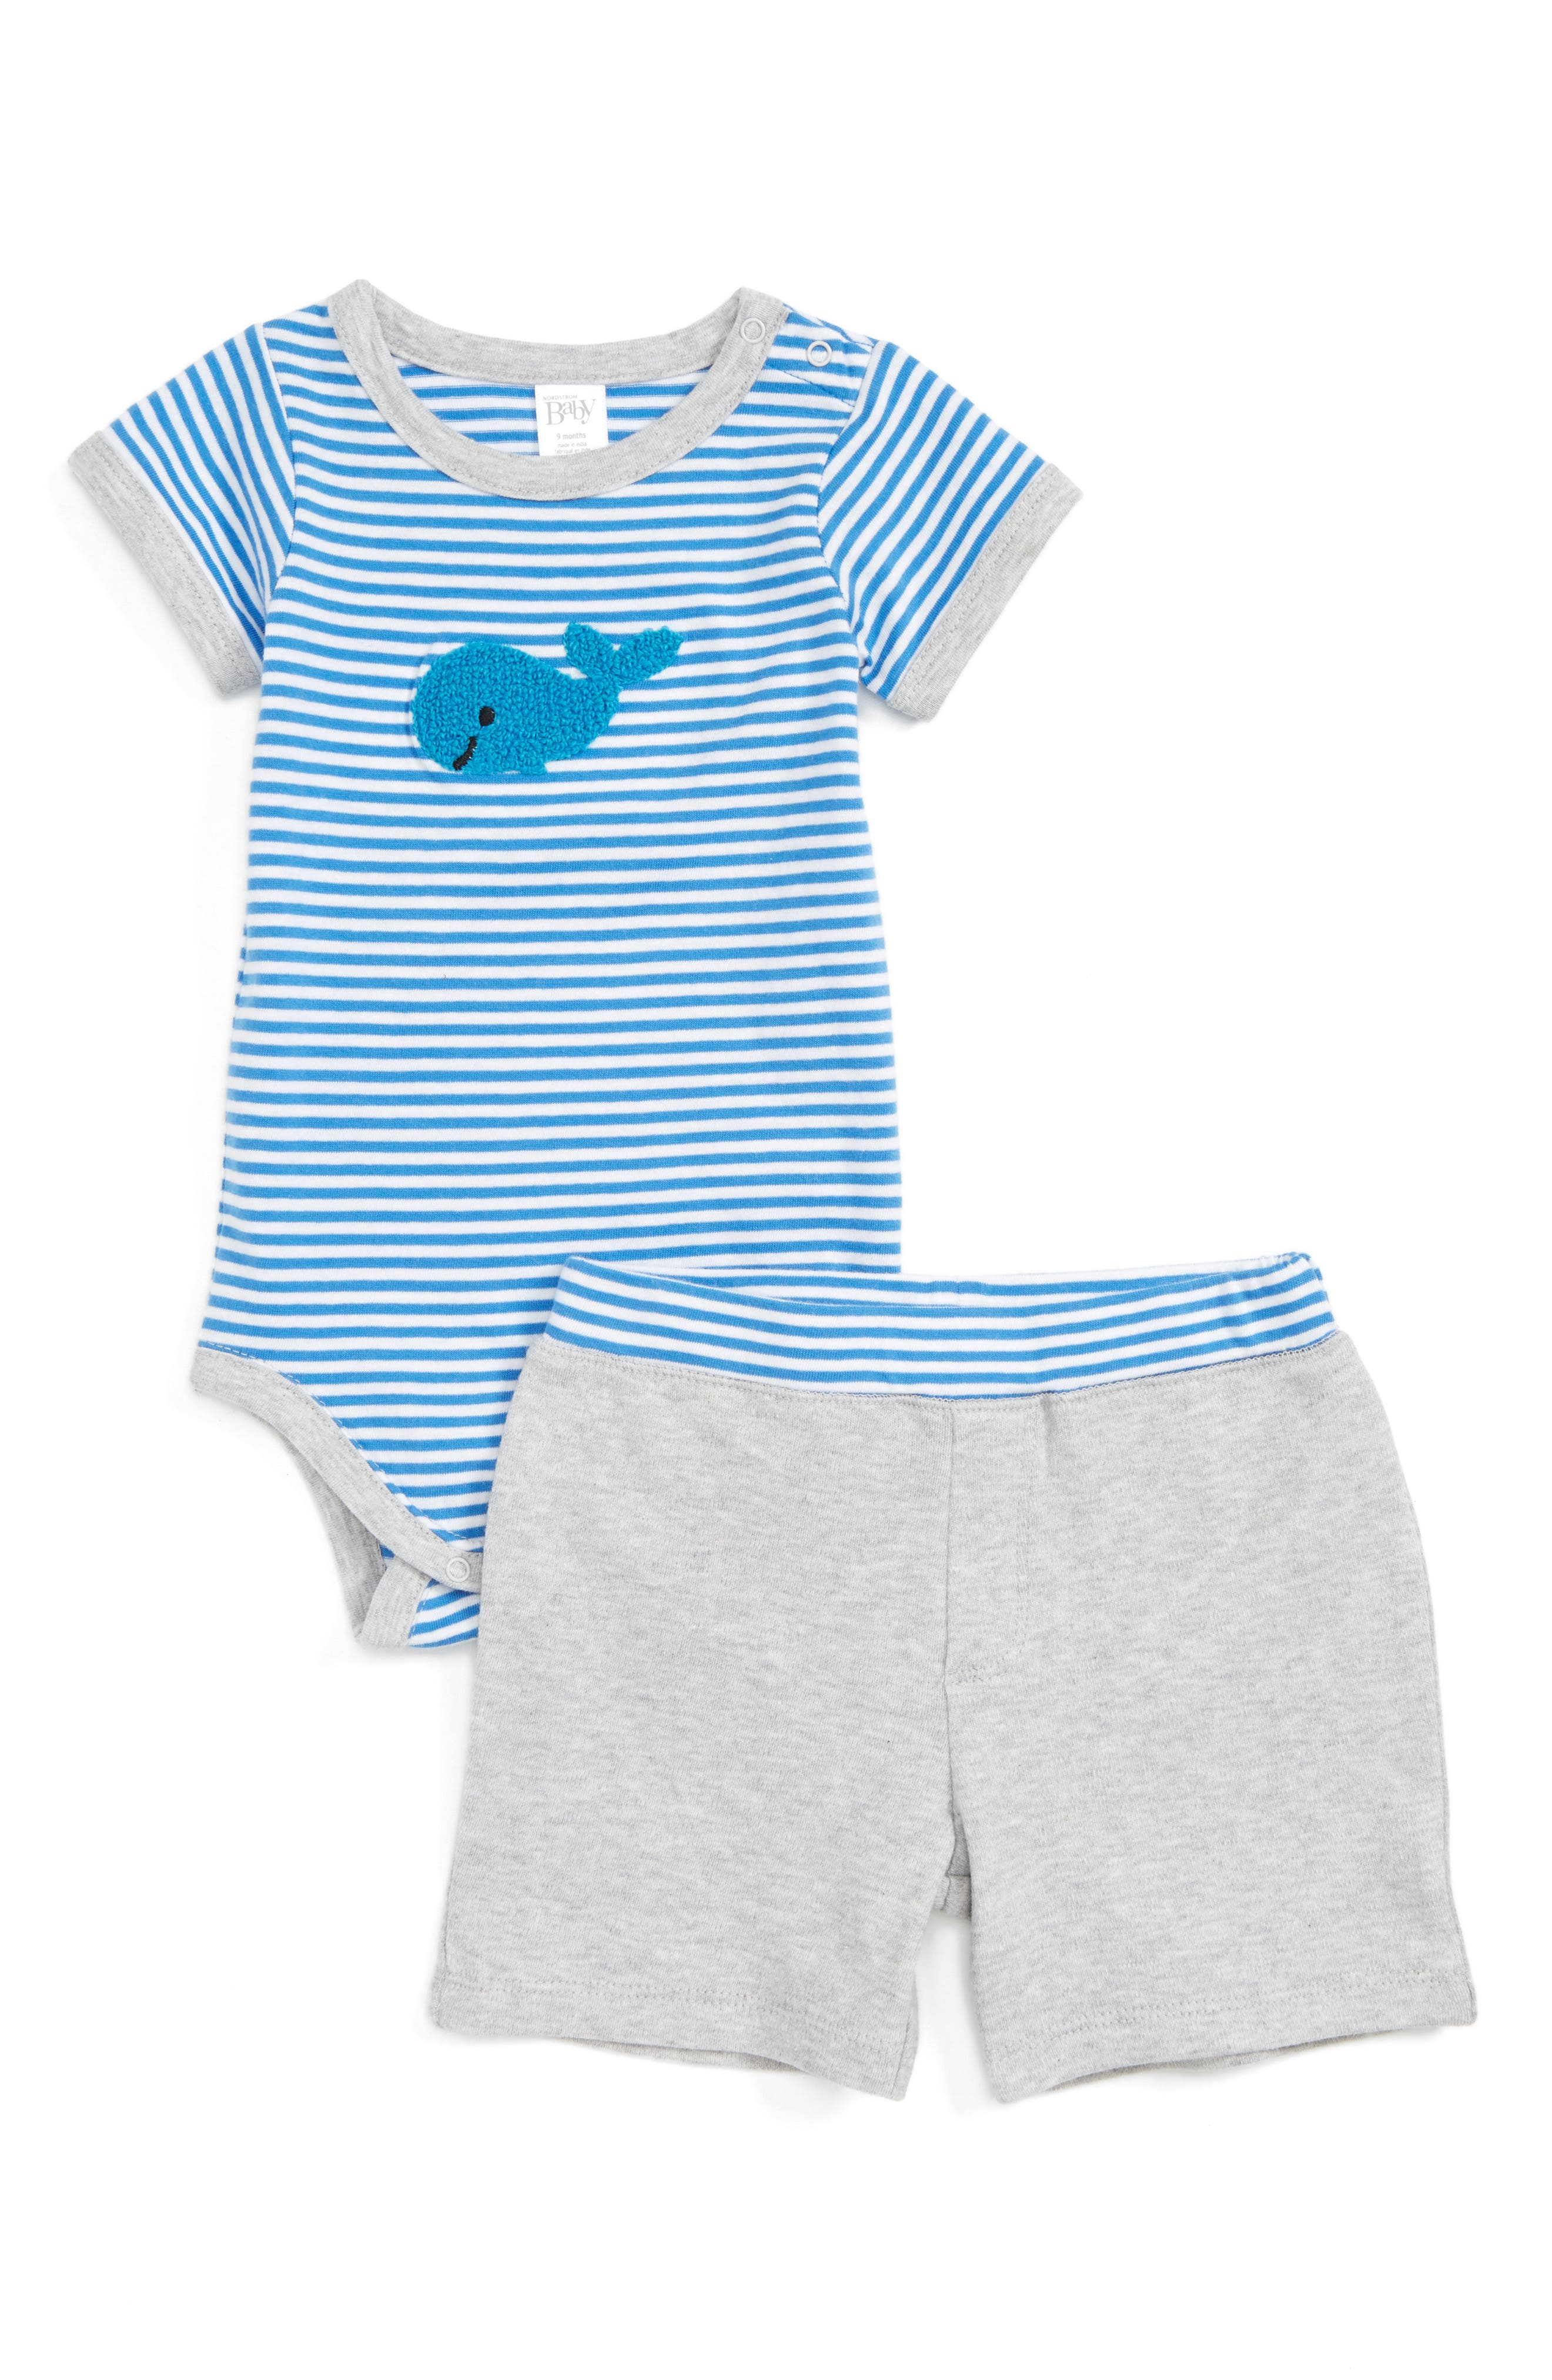 Nordstrom Baby Bodysuit & Shorts Set (Baby Boys)